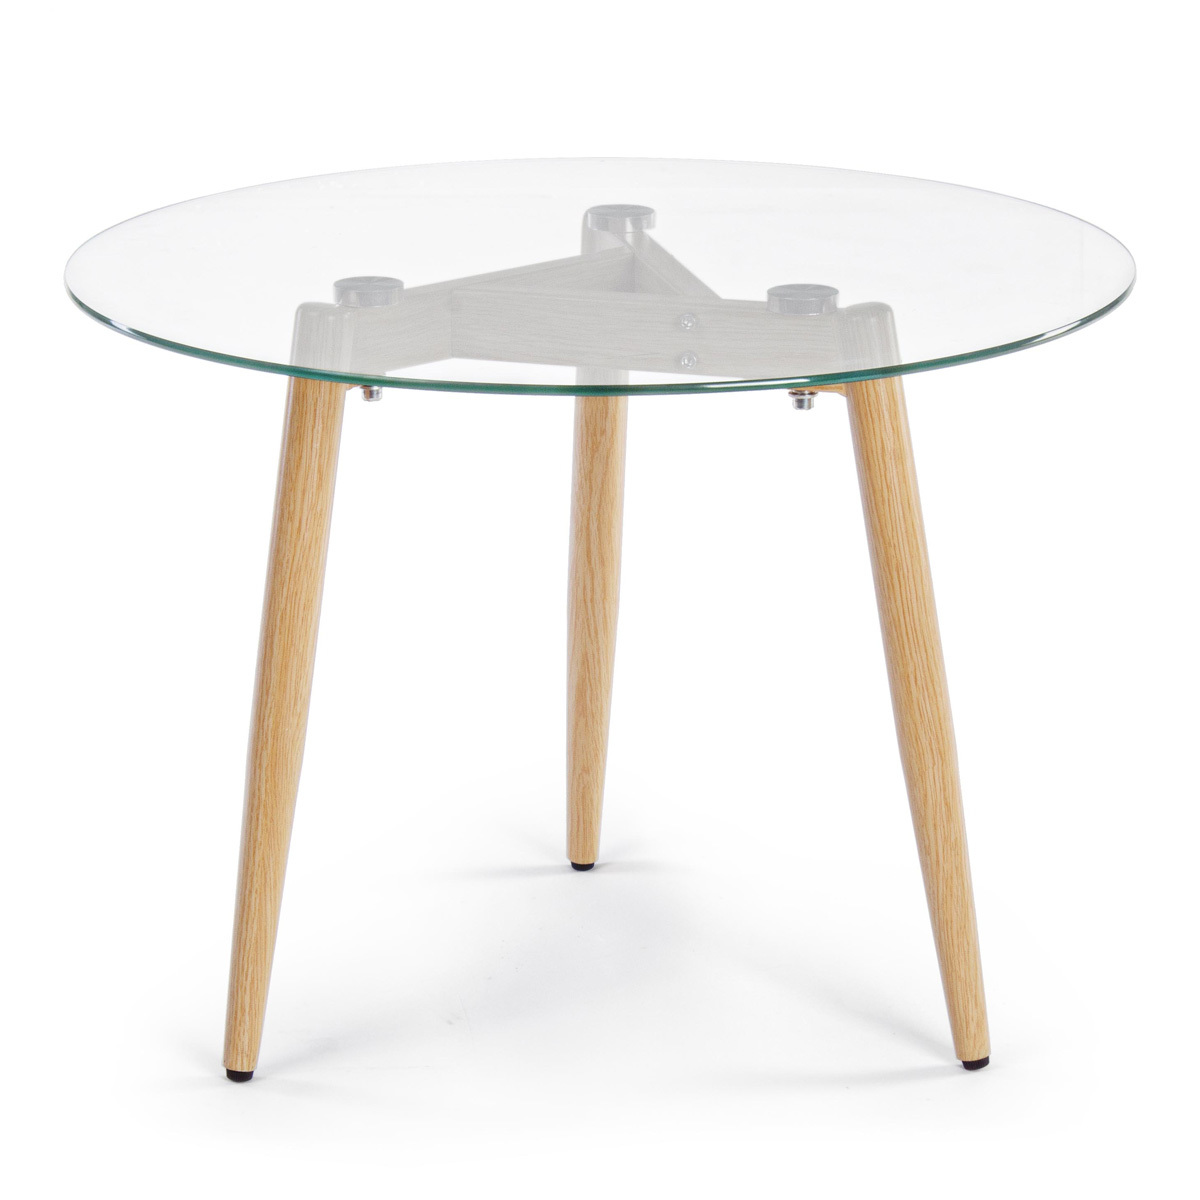 Photos 2: Bizzotto Table in metal and glass d.60 0730794